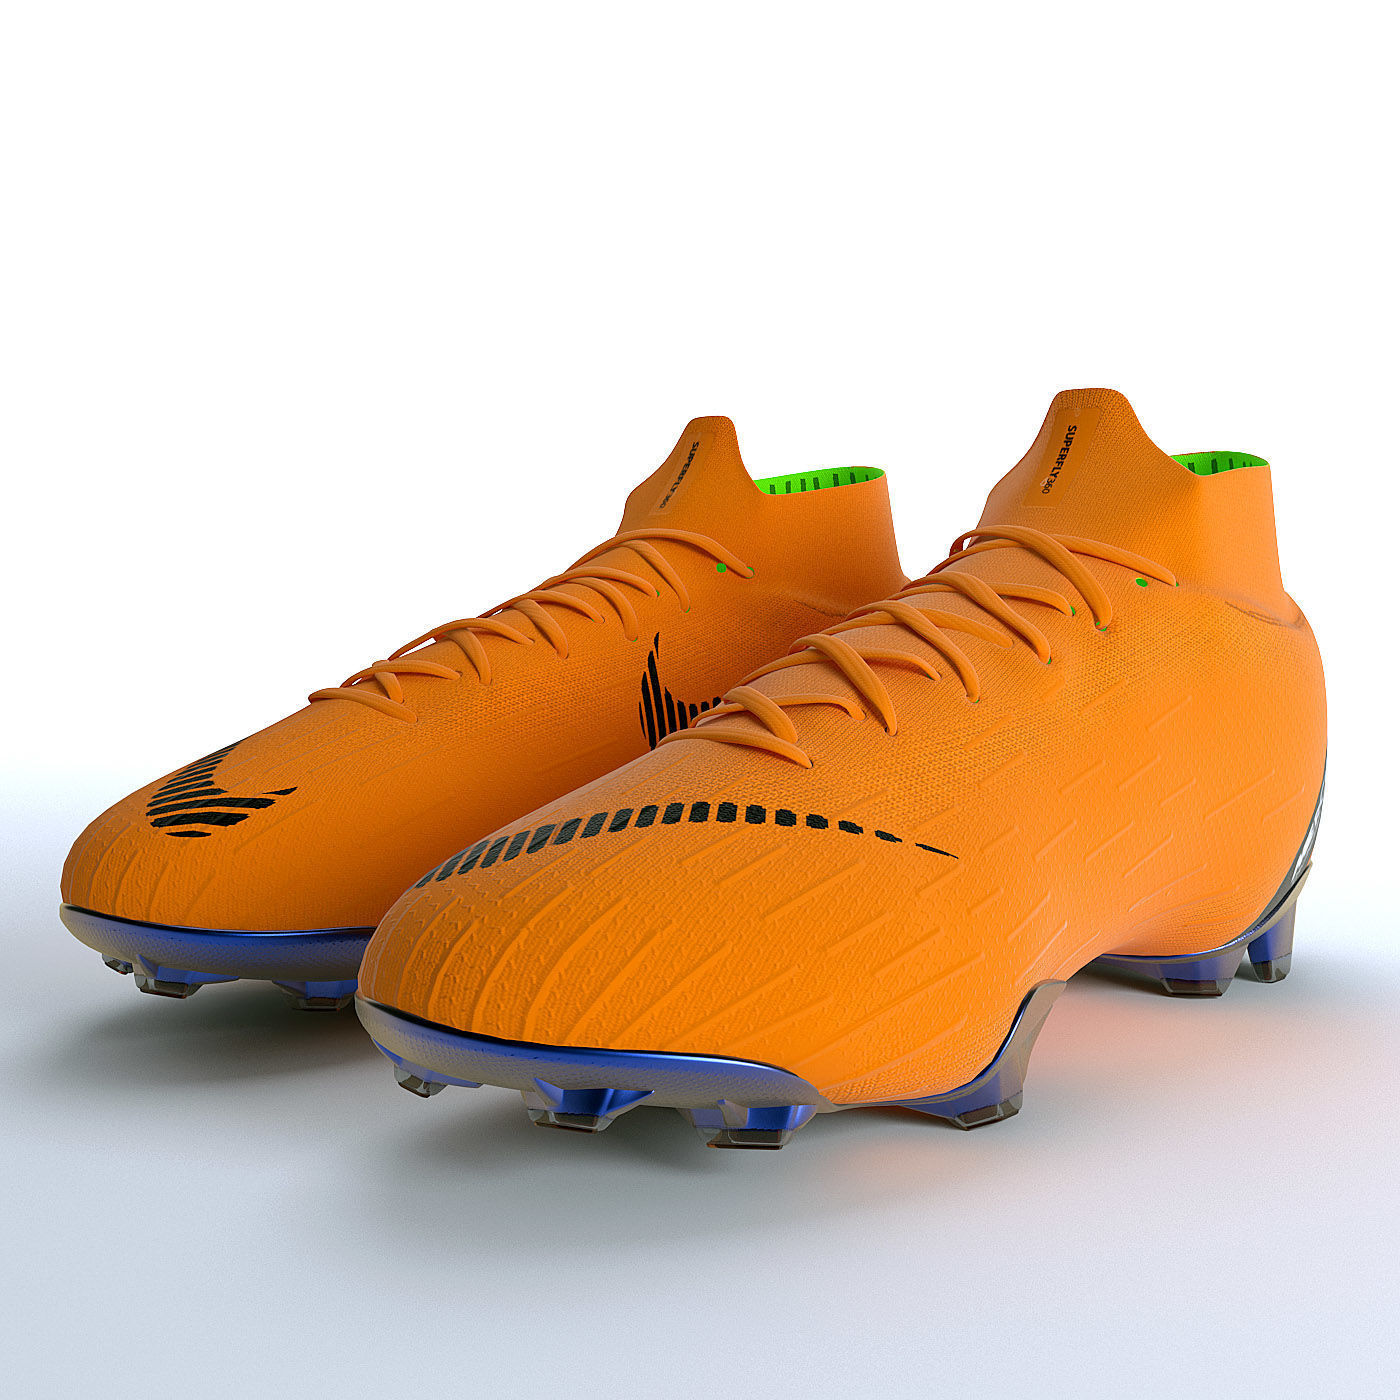 info for 80d3e d777c Nike Mercurial Superfly 360 Elite PBR | 3D model